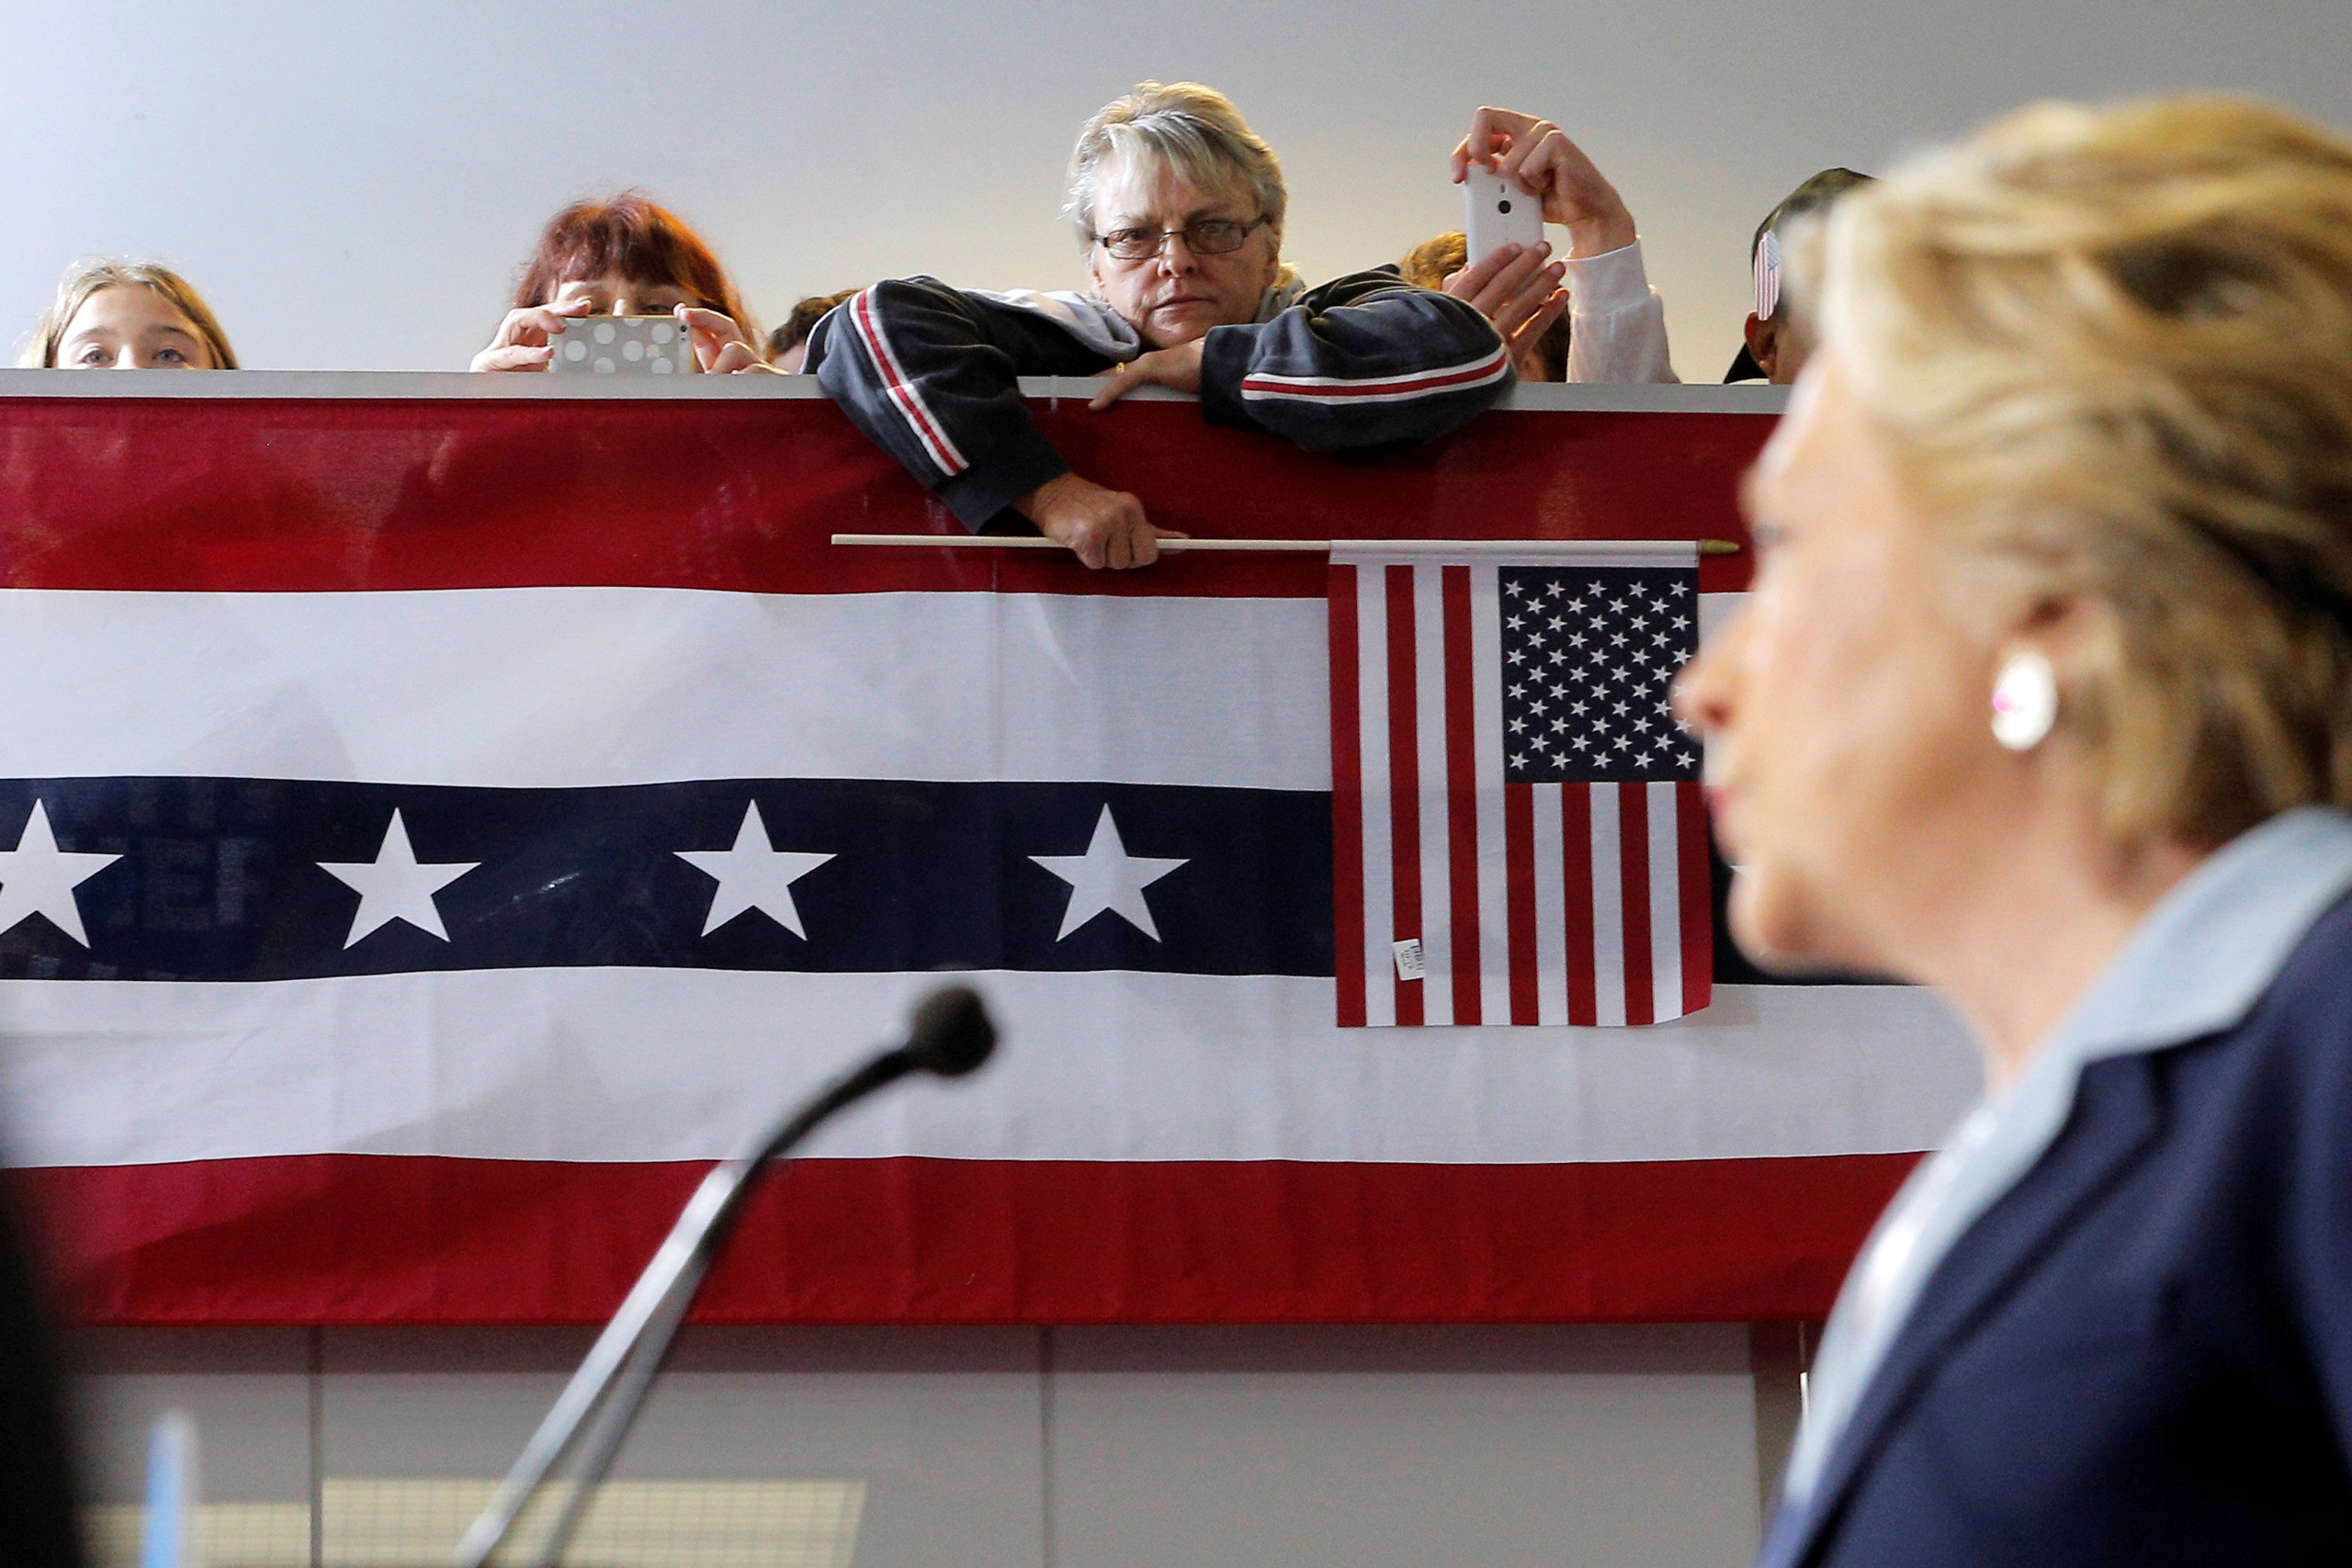 Audience members listen as Democratic presidential nominee Hillary Clinton delivers an economic speech during a campaign stop in Toledo, Ohio, on Oct. 3, 2016.